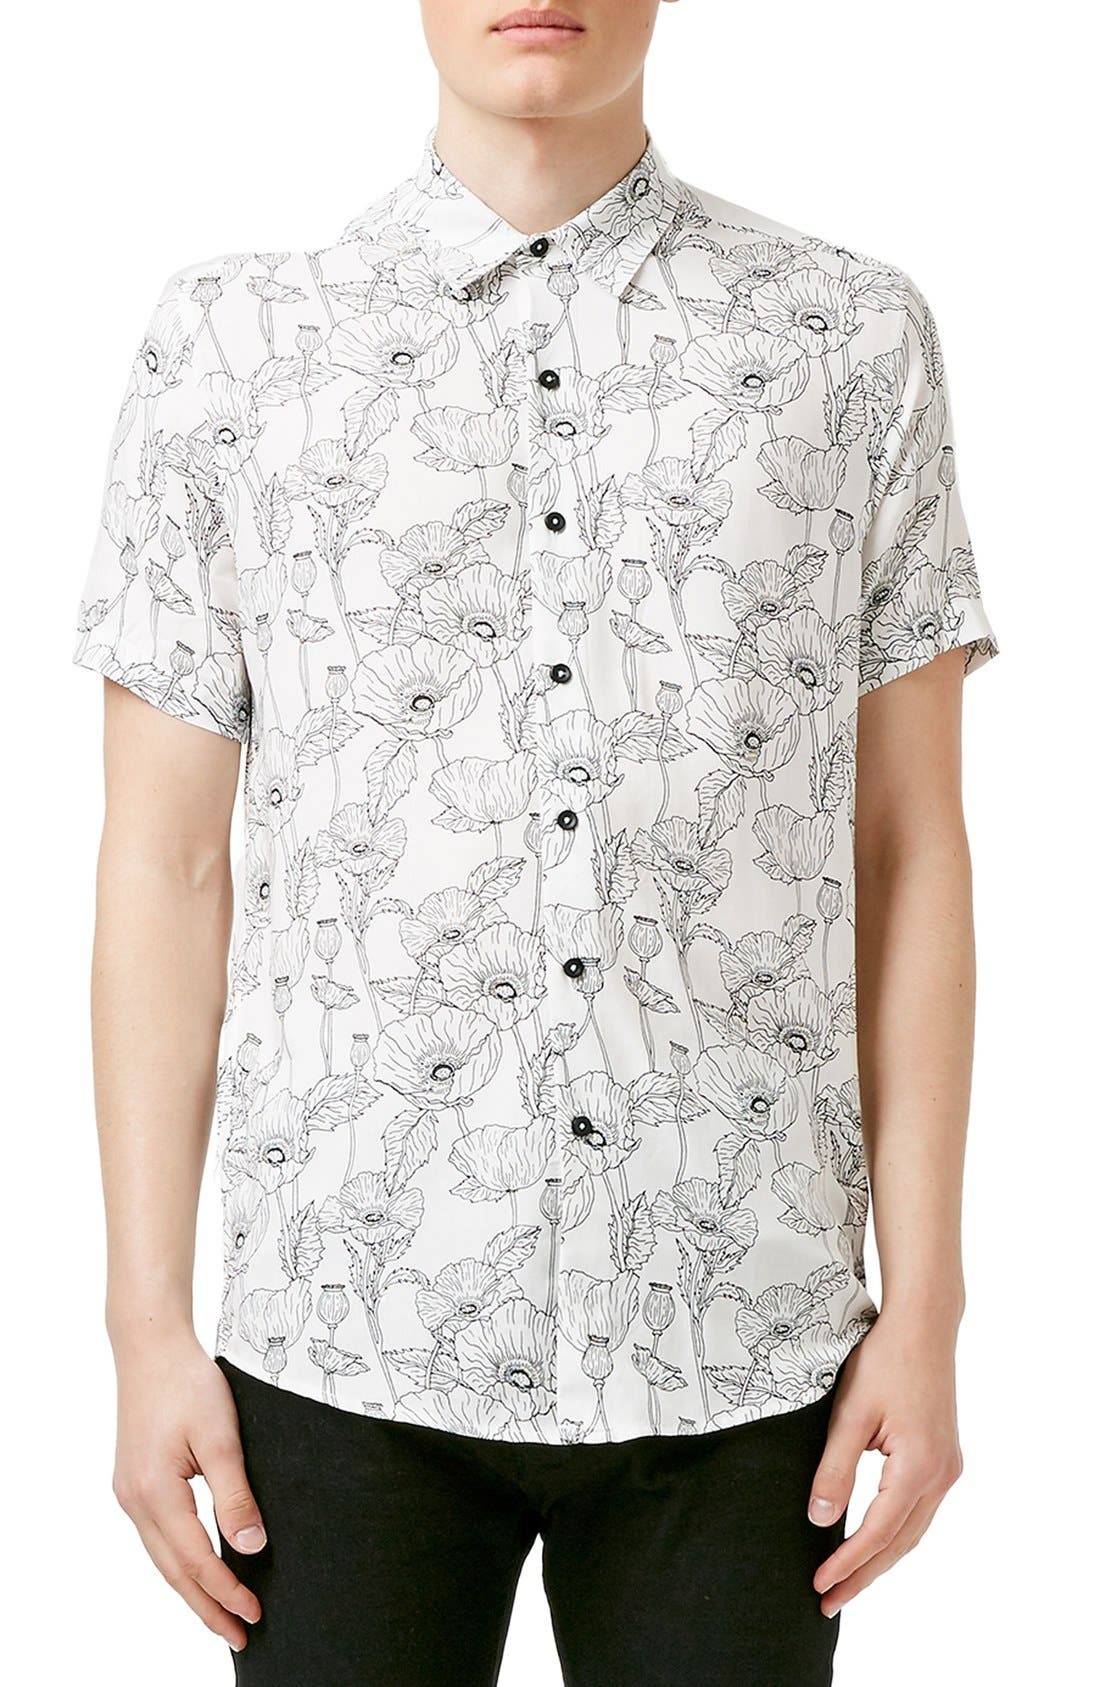 Alternate Image 1 Selected - Topman Slim Fit Short Sleeve Poppy Print Shirt